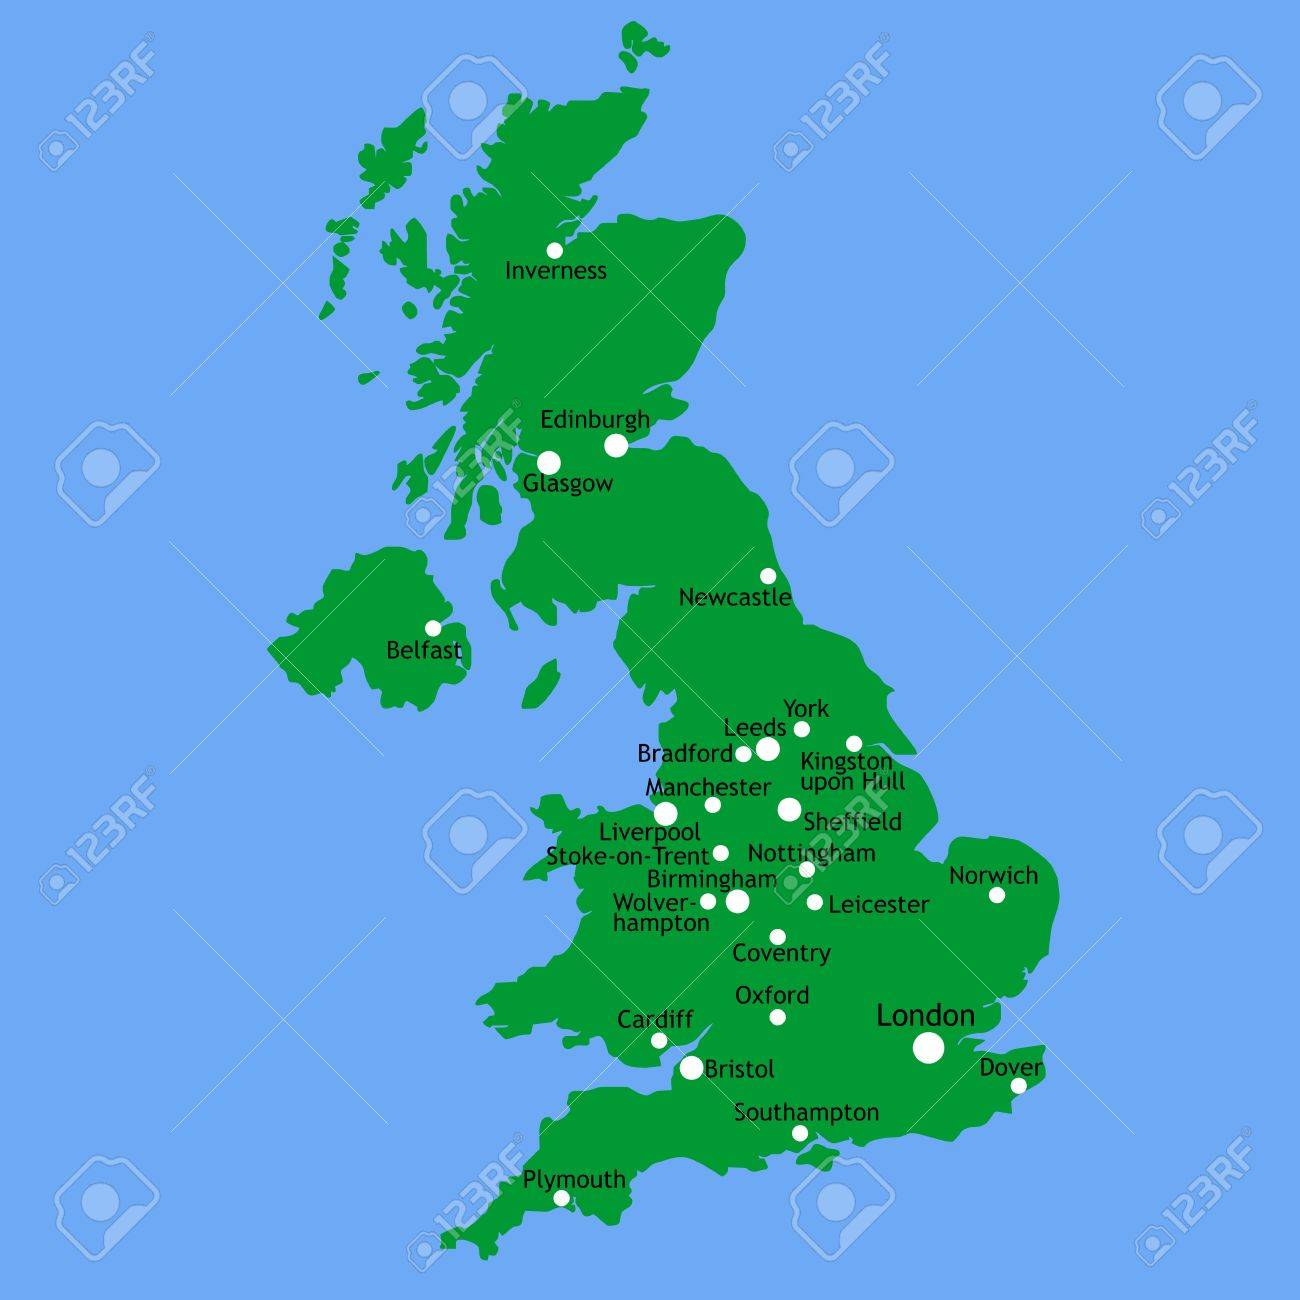 Map Of Major Uk Cities.Uk Map With Main Towns And Cities